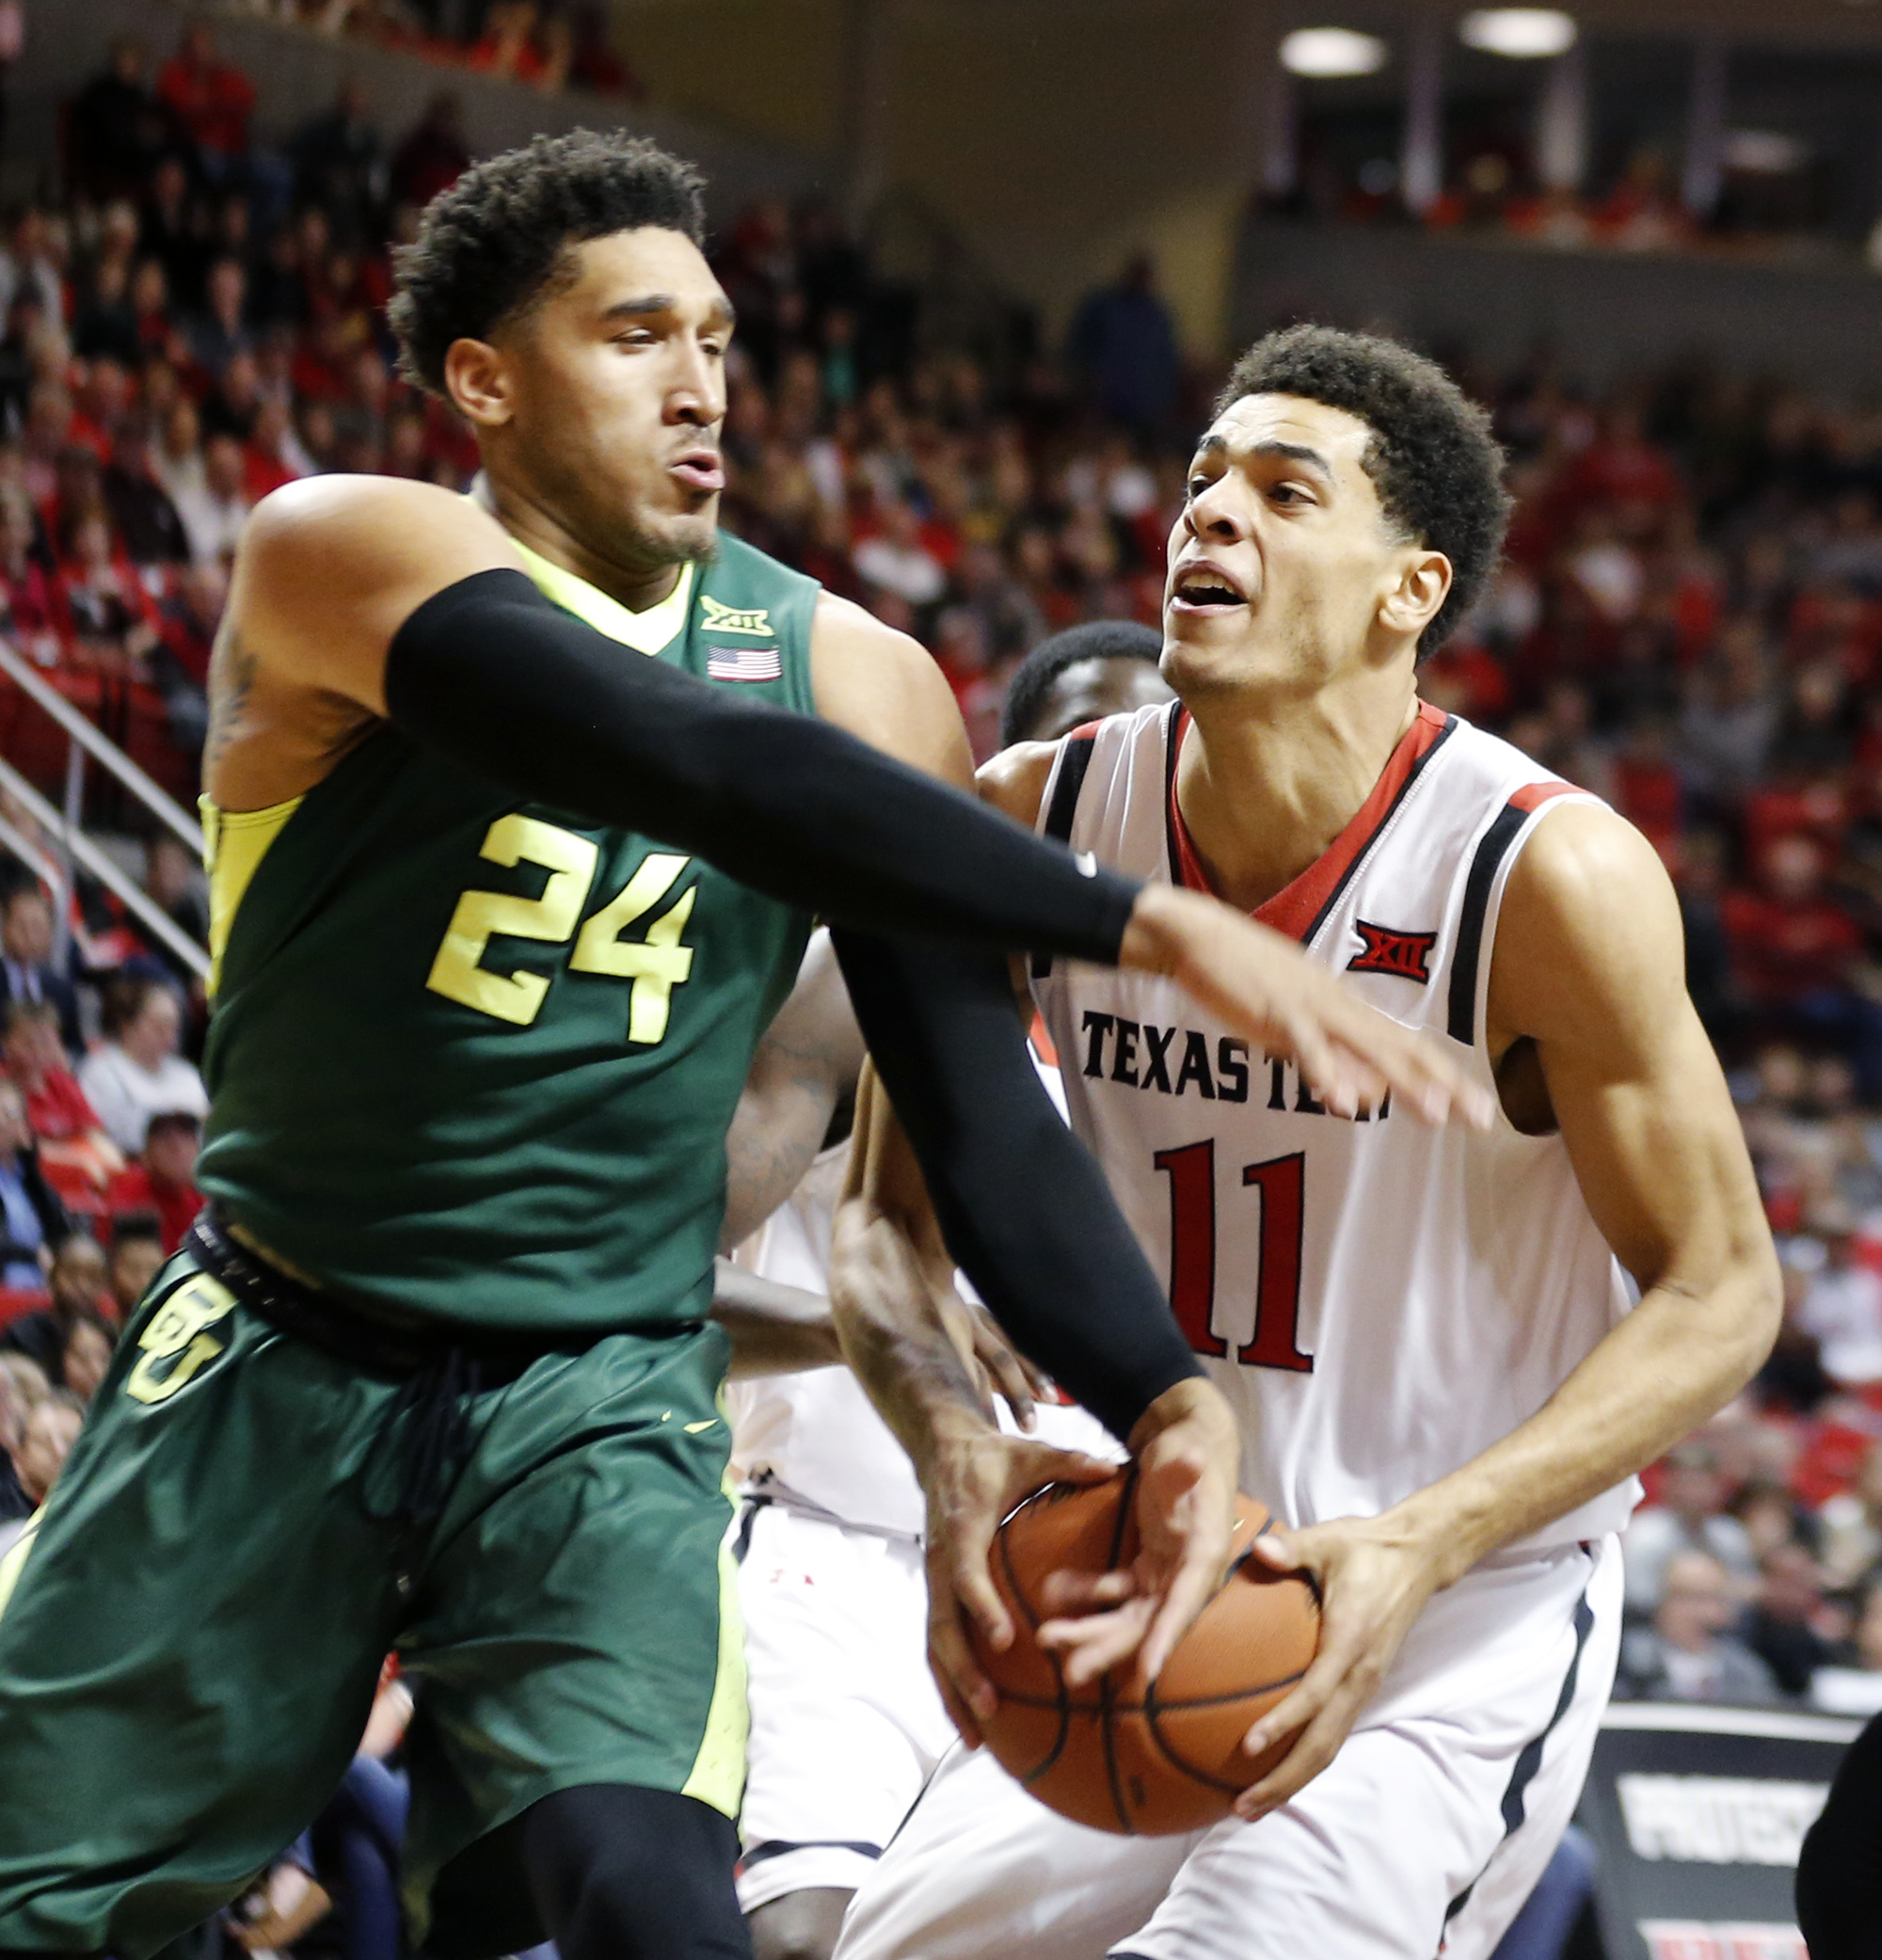 Baylor guard Ishmail Wainright and Texas Tech forward Zach Smith tangle in the first period during an NCAA college basketball game against Baylor University, Saturday, Jan. 16, 2016, in Lubbock, Texas. (Mark Rogers/Lubbock Avalanche-Journal via AP) MANDAT